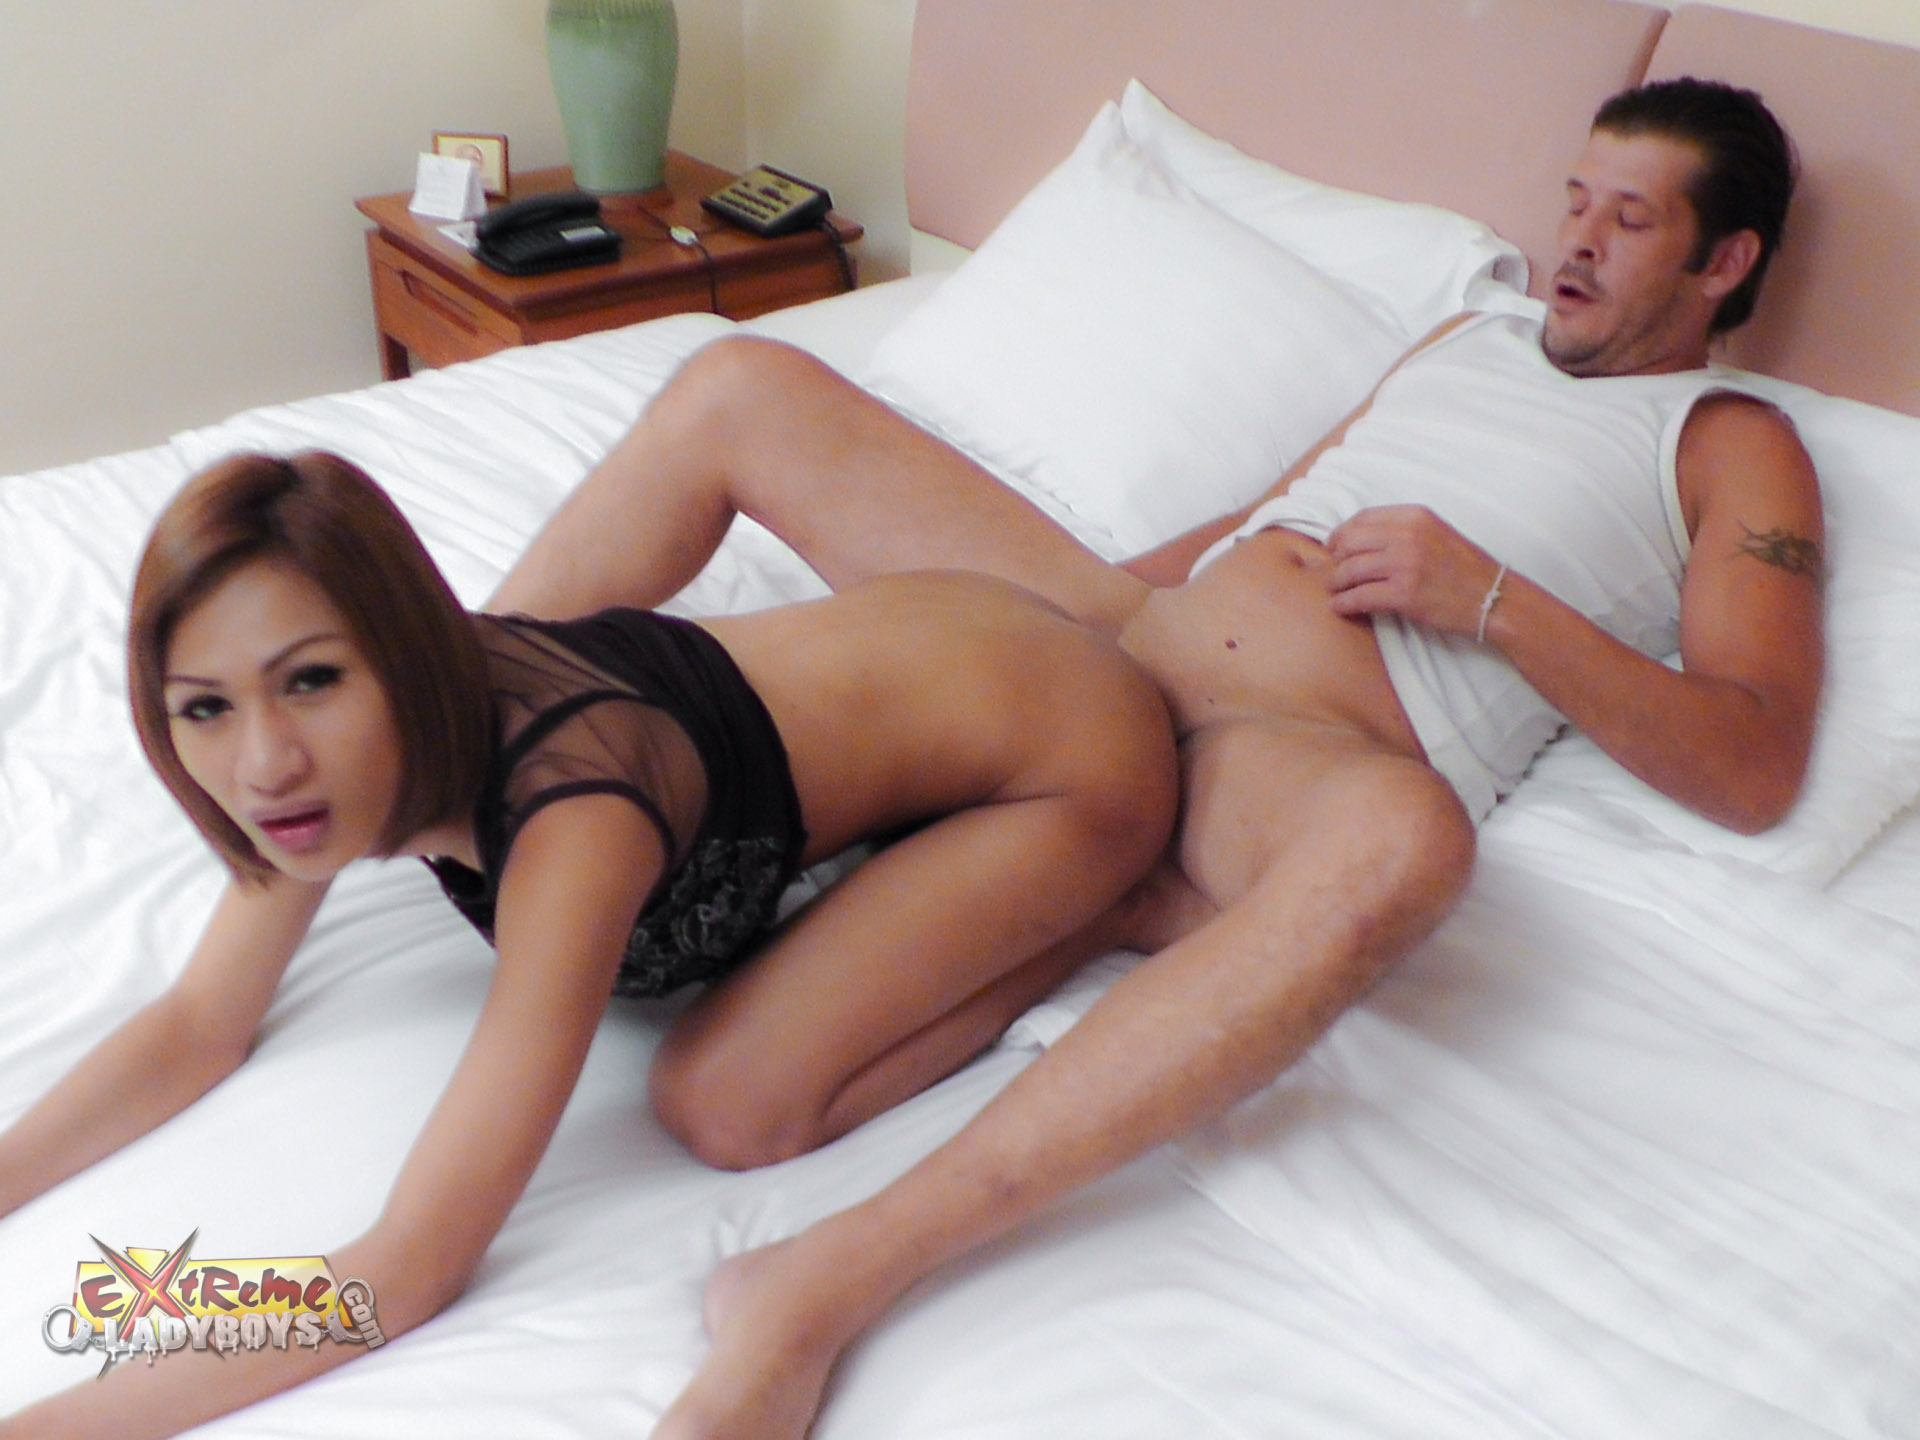 Watch Thai Ladyboy Porn